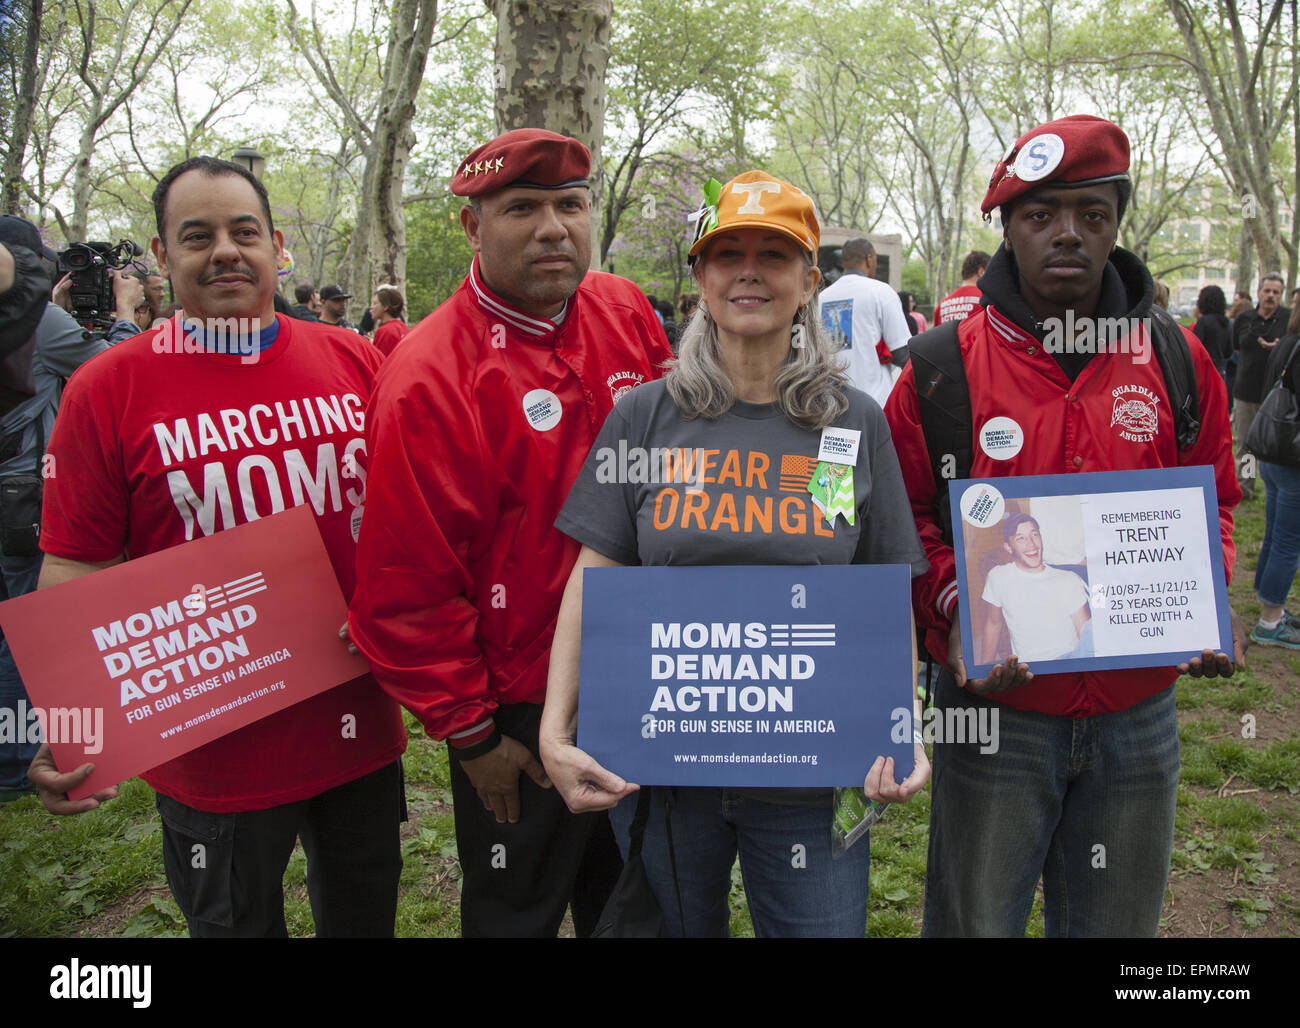 3rd Annual Walk Across The Brooklyn Bridge march and rally against gun violence sponsored by 'Moms Demand Action' - Stock Image